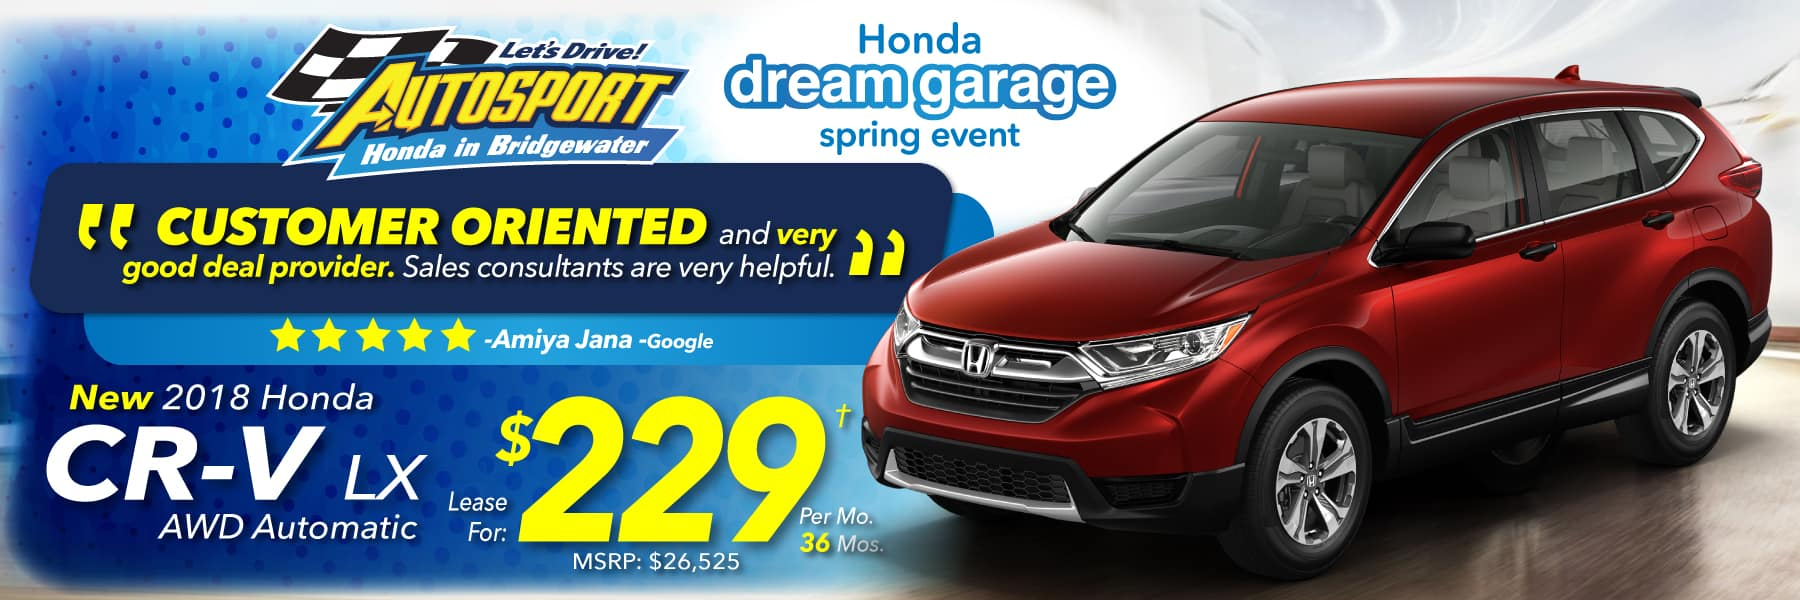 The expert service technicians at Autosport Honda, your Honda service center serving Plainfield, will keep your Honda running at peak performance for many years. Whether you own a new Honda or your vehicle is a few years old, our service pros deliver accurate service, always performed quickly.